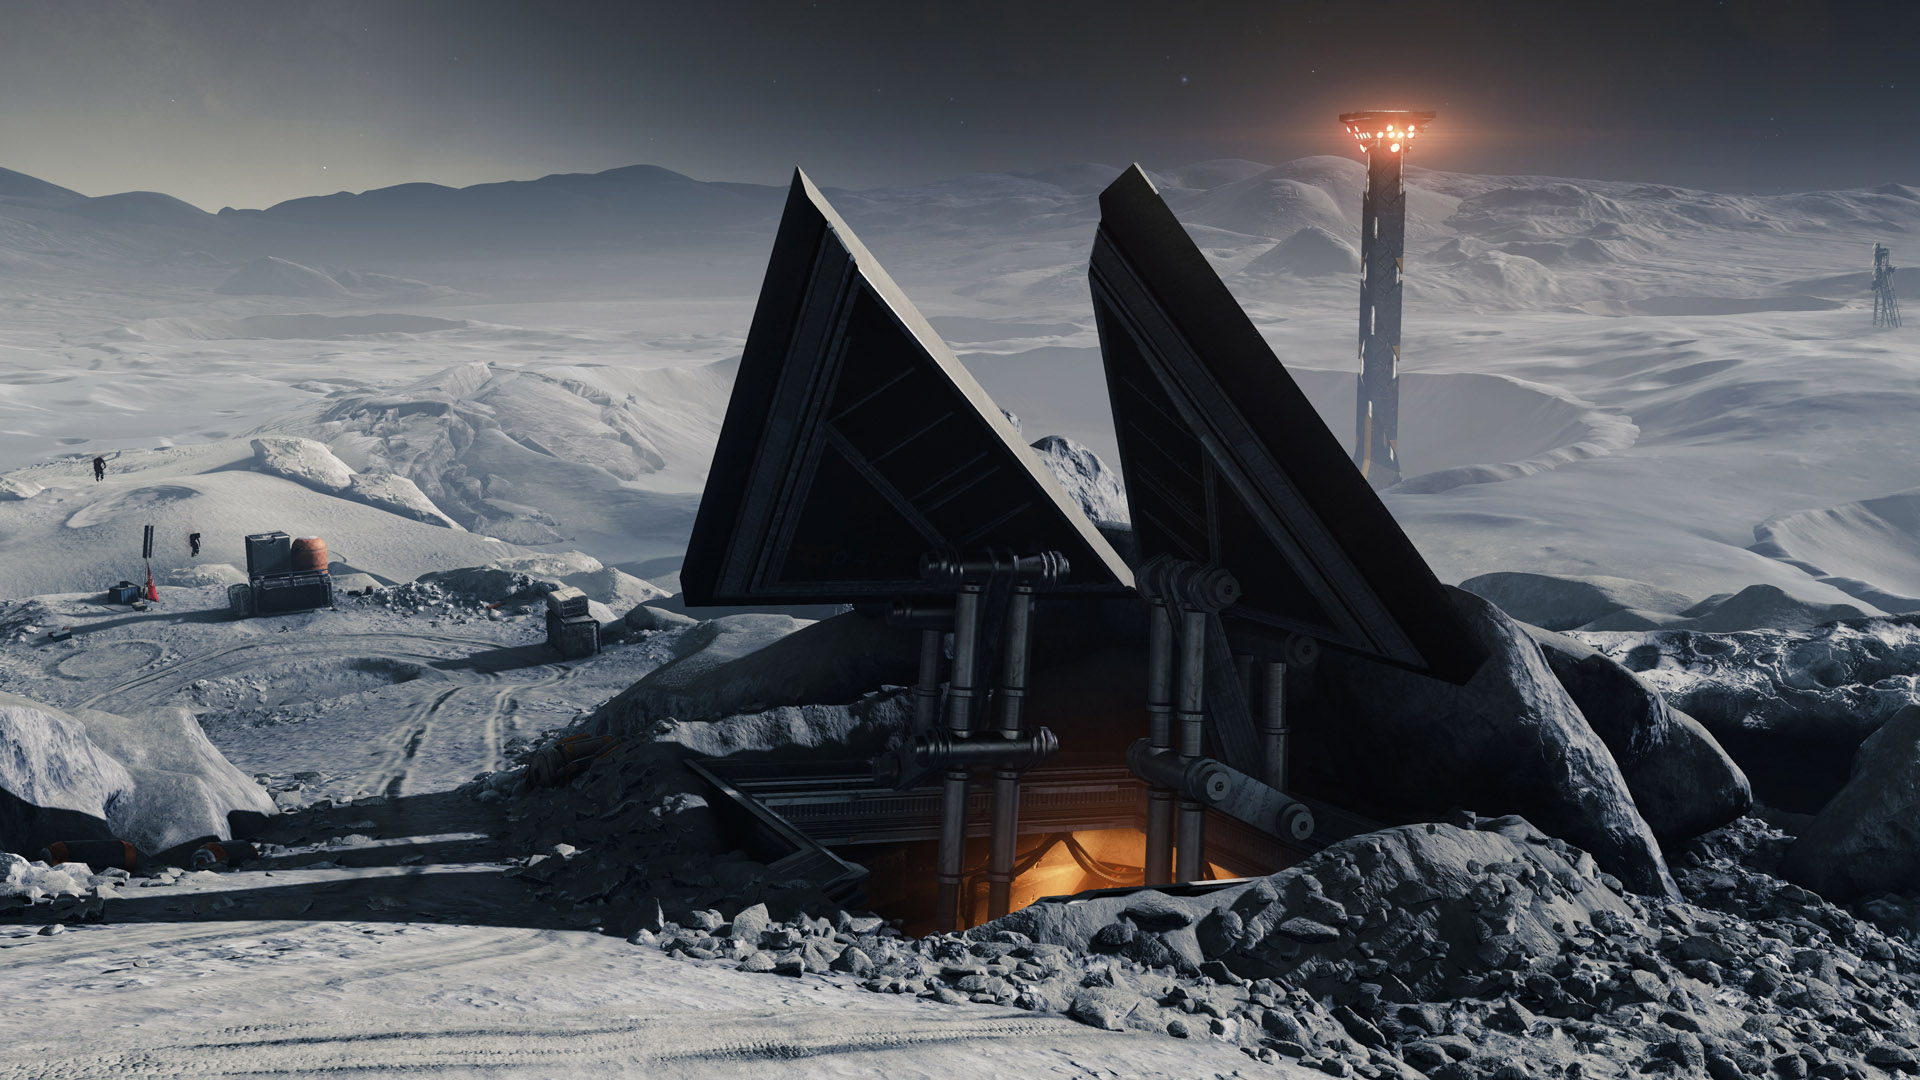 Destiny 2 Season of the Worthy moon bunker